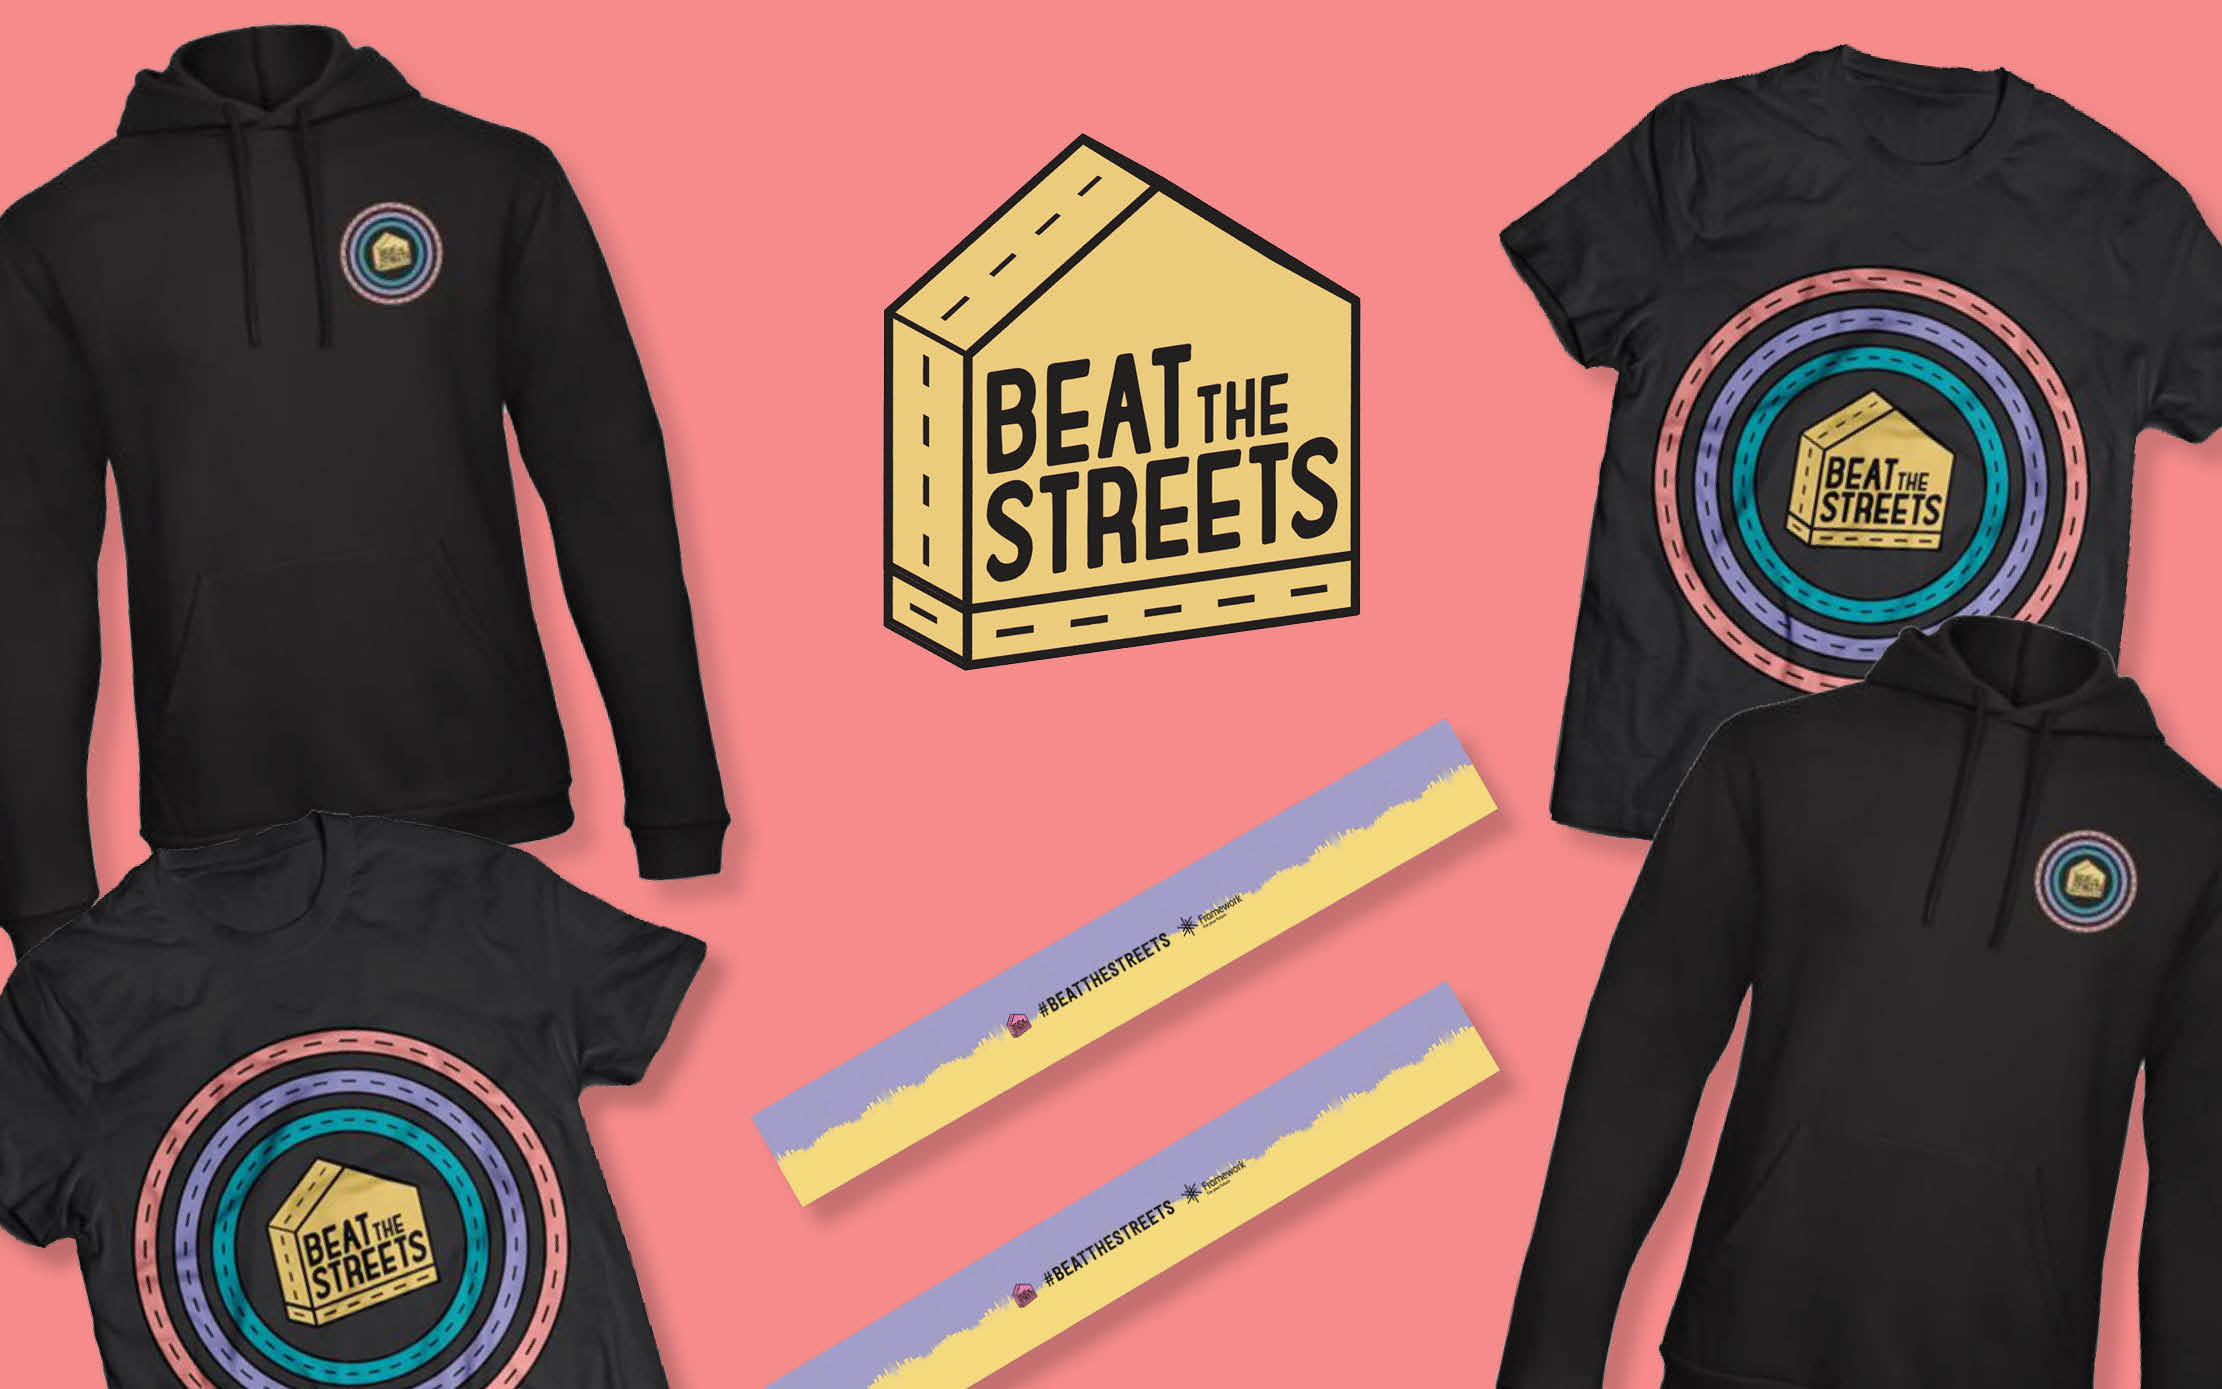 National Merchandise Returns to Beat The Streets